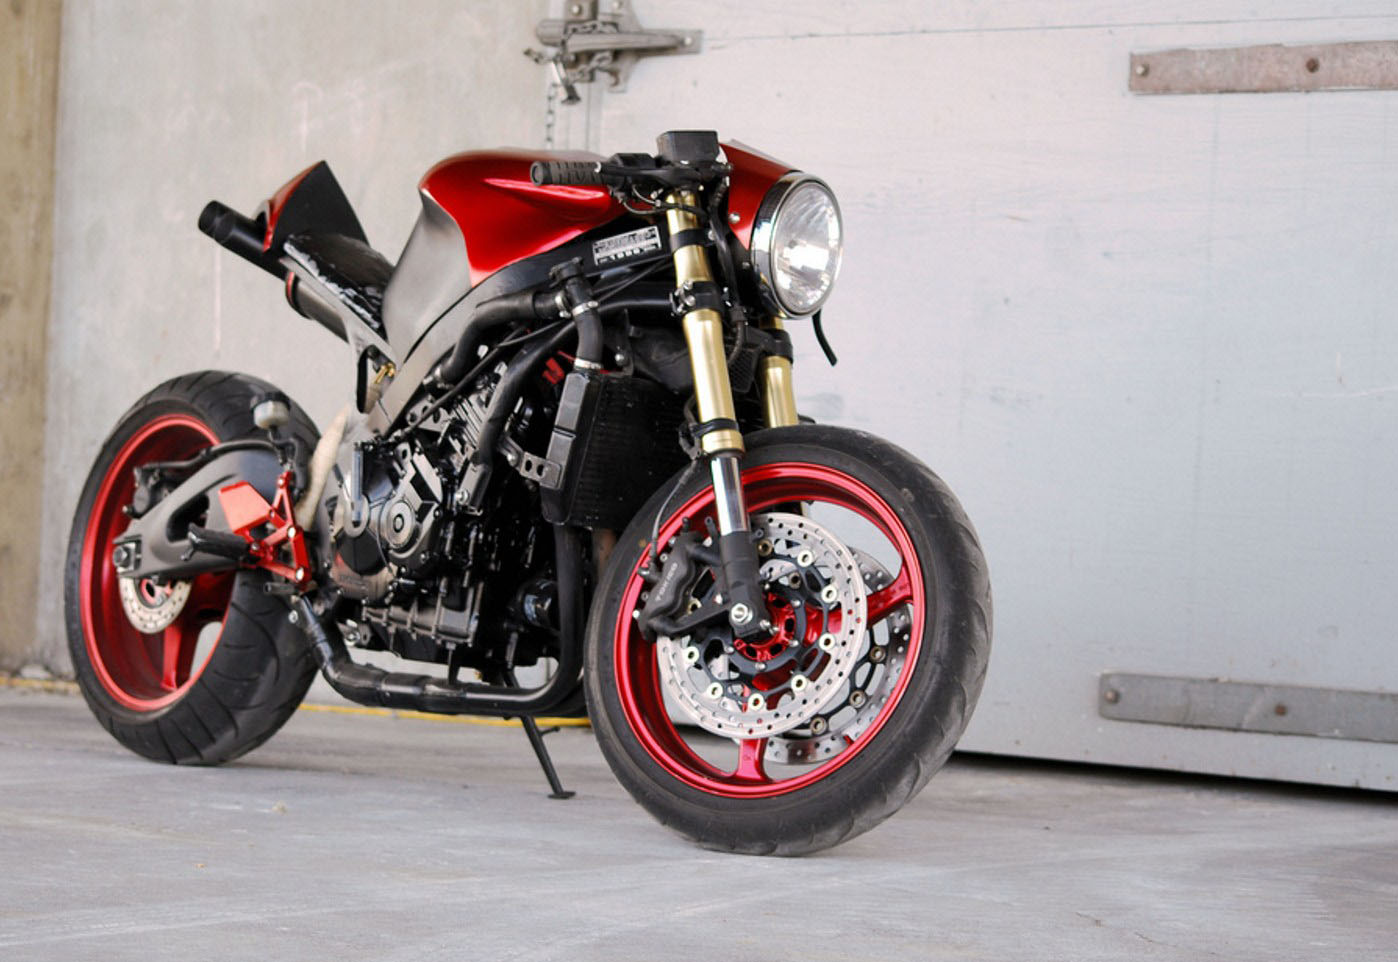 Return of the Cafe Racers - Honda CBR600F3 Street Fighter